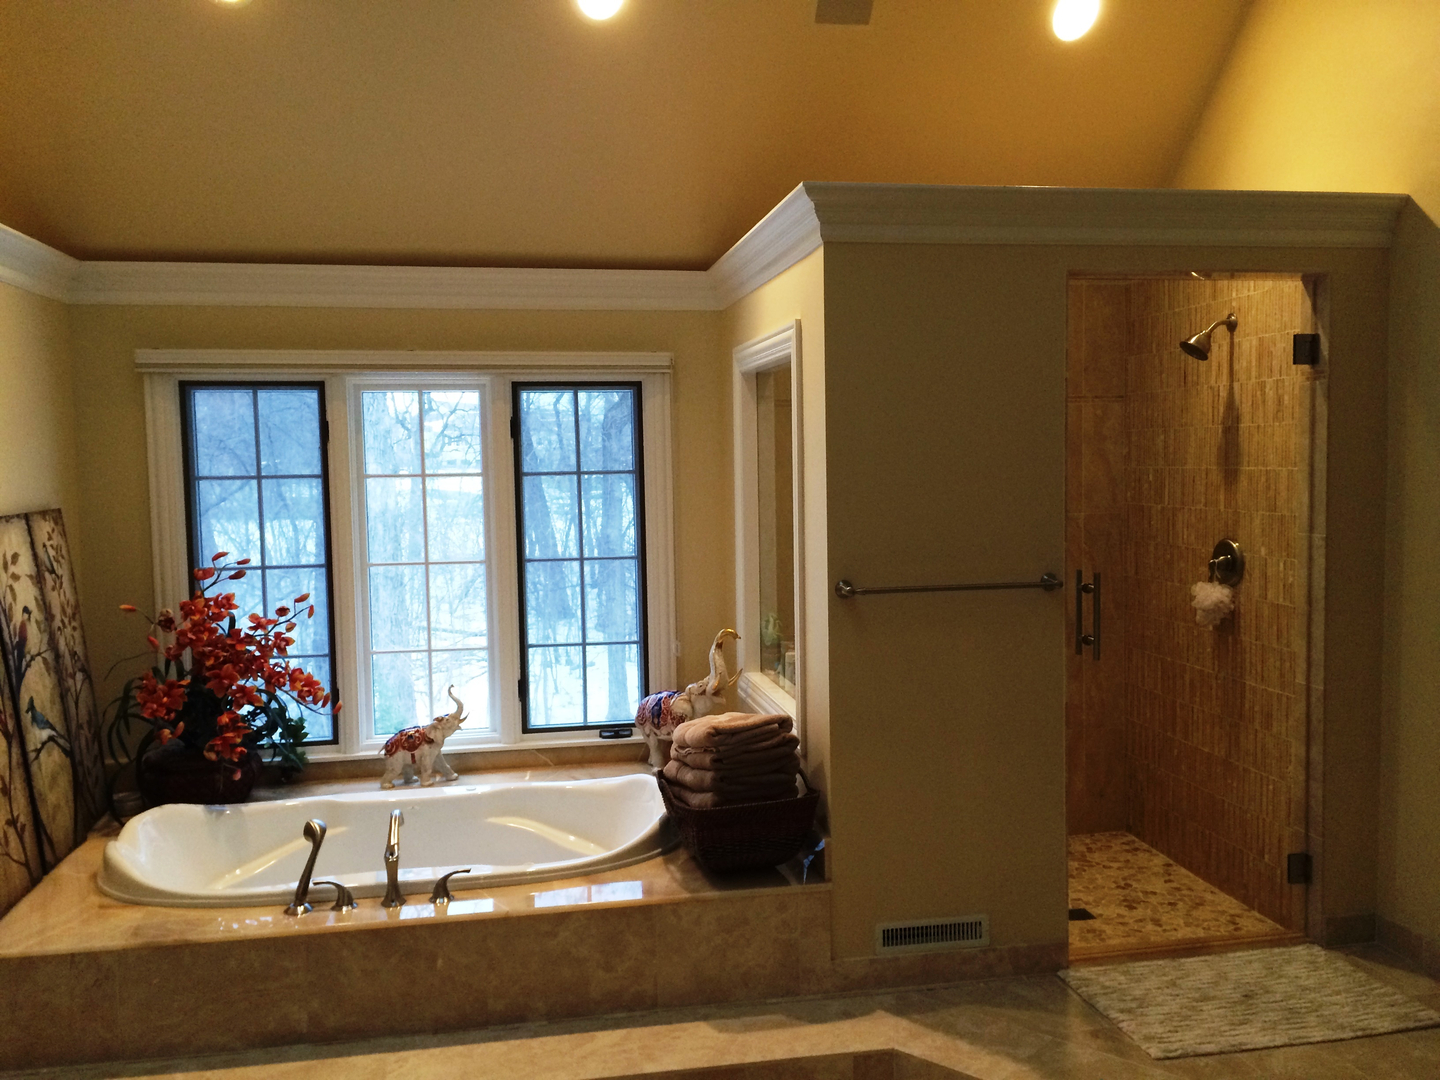 Home Finishing Remodeling Schaumburg IL Weshorn Home Remodelers - Bathroom remodeling schaumburg